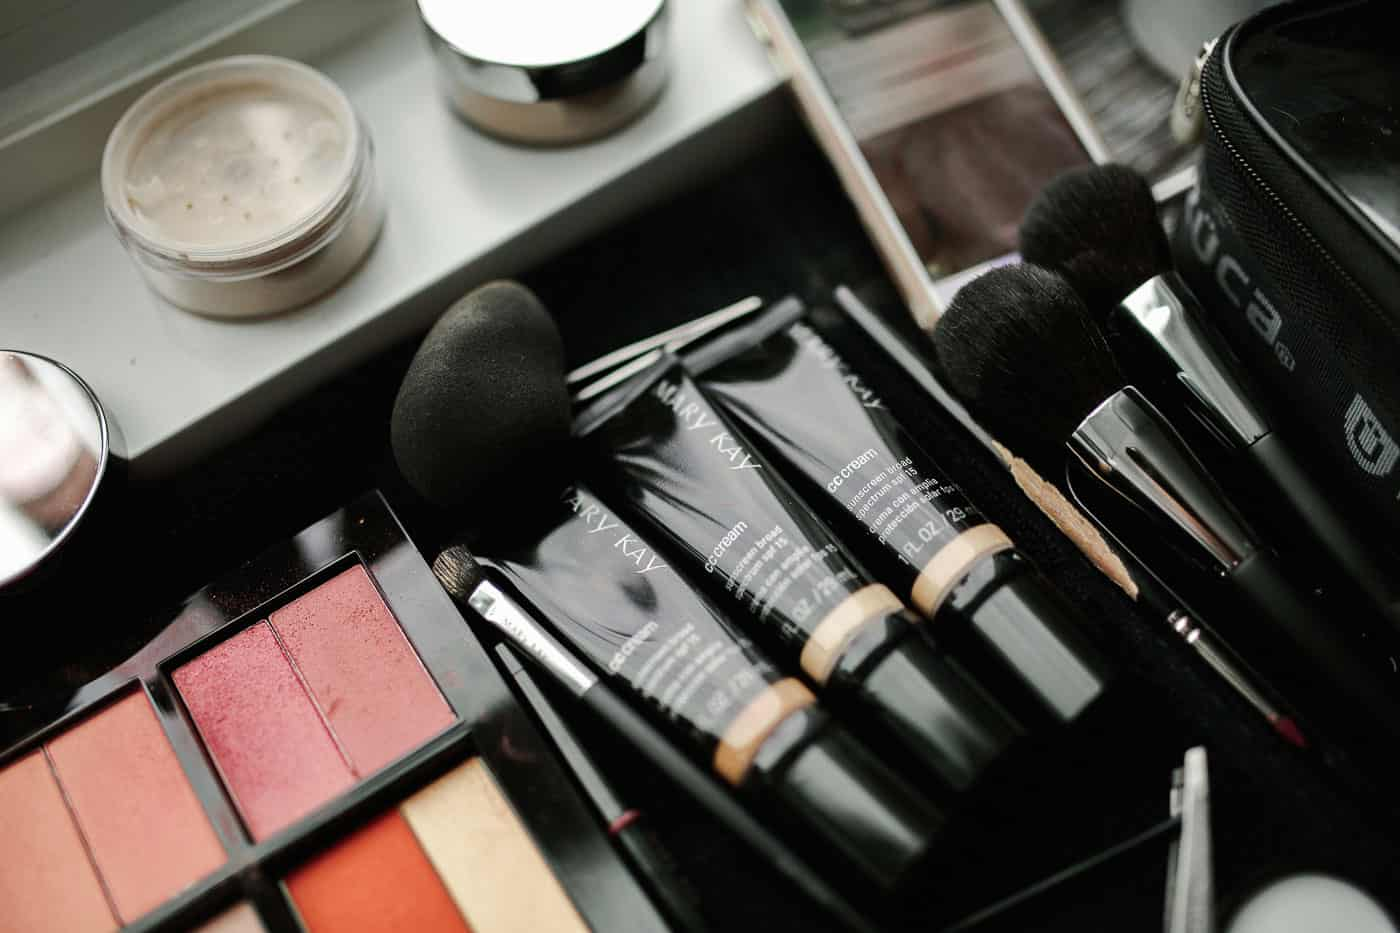 makeup, beauty blender, getting ready with makeup - My Style Vita @mystylevita